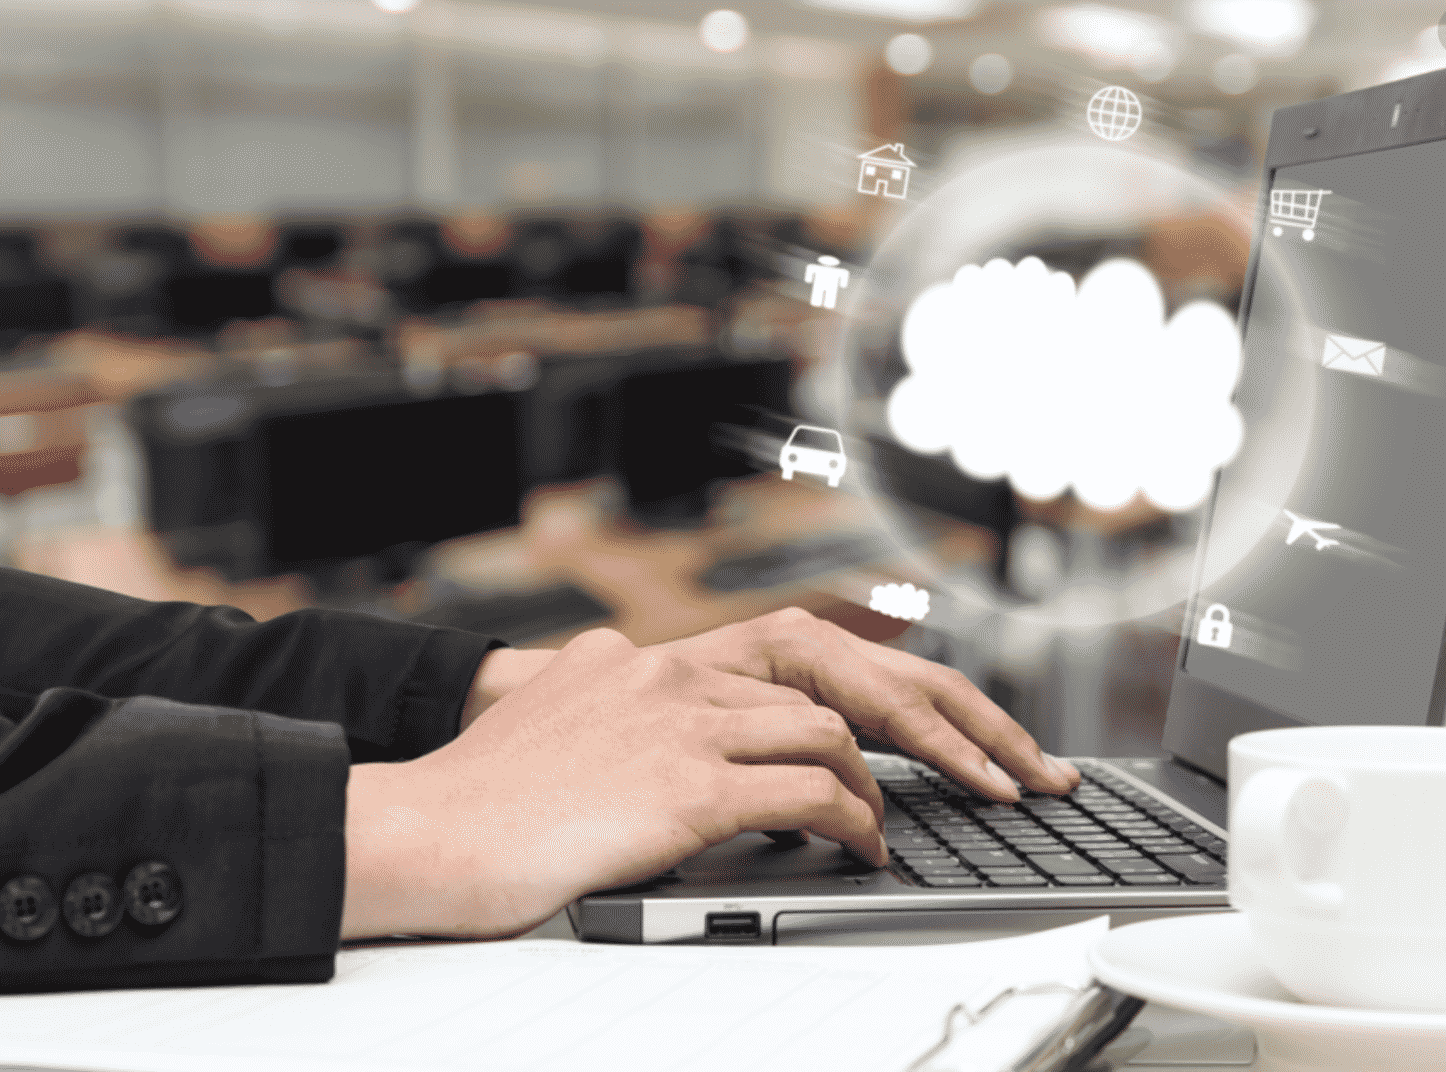 What is Cloud Computing? What are the various features of Cloud Computing?